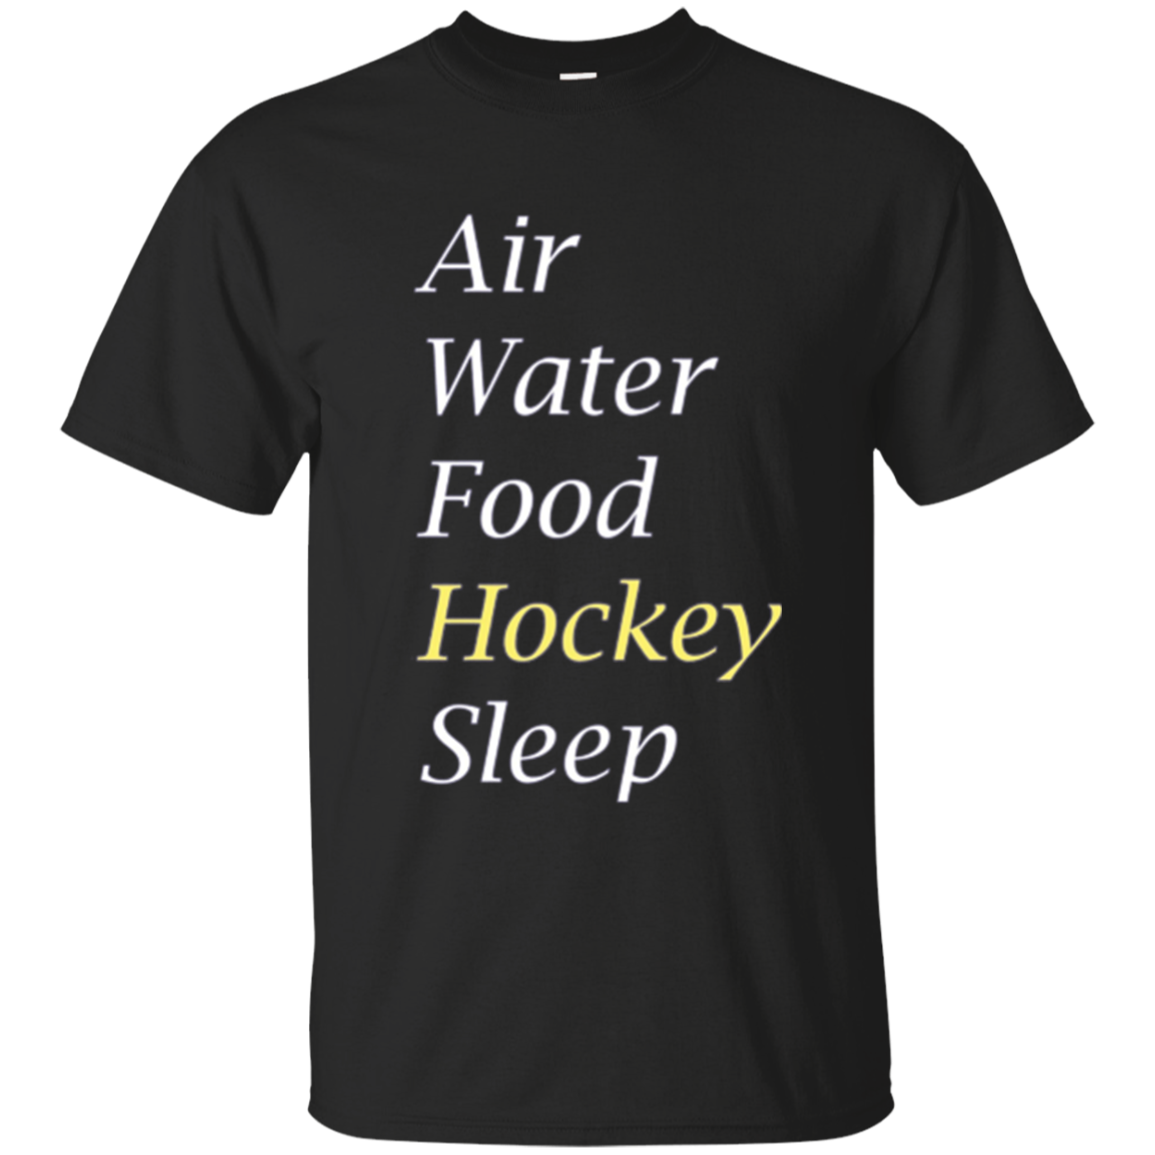 Air Water Food Hockey Sleep T-Shirt